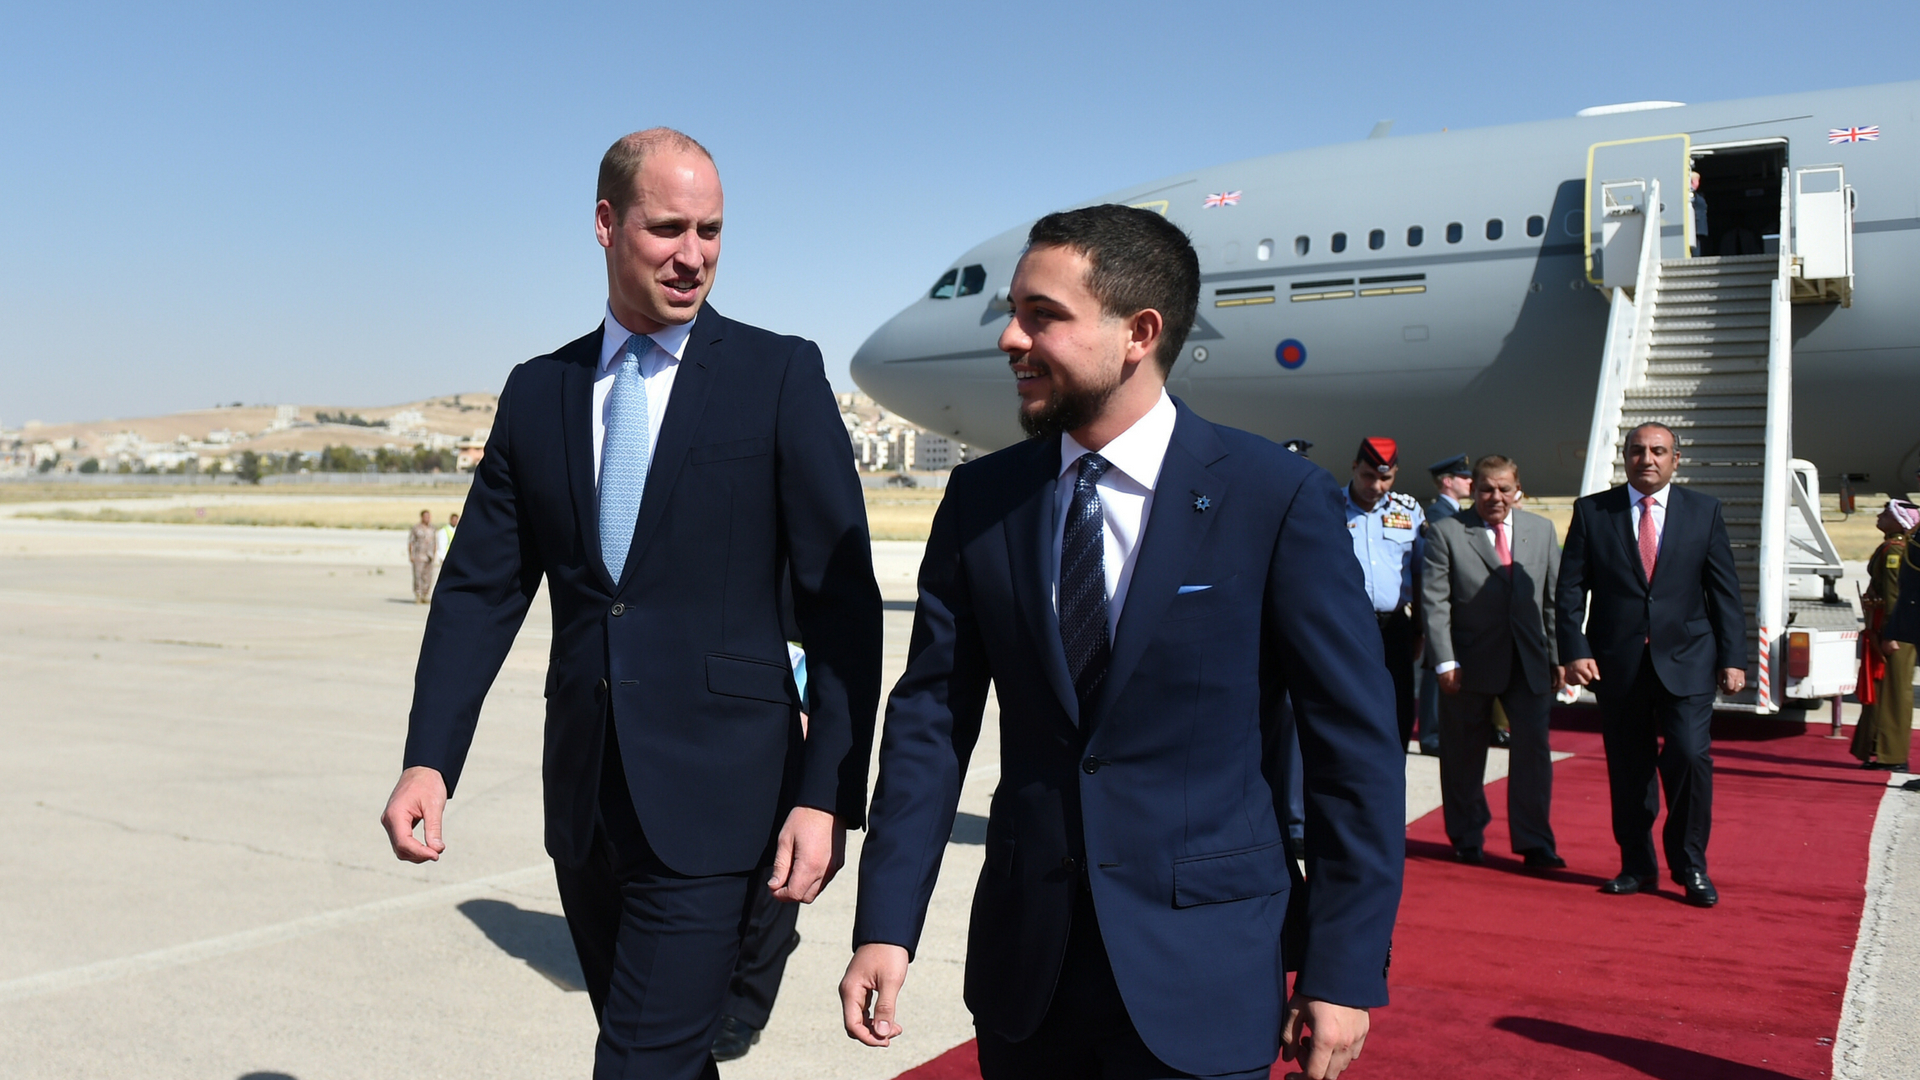 Prince William Is Coming To The Middle East Next Month